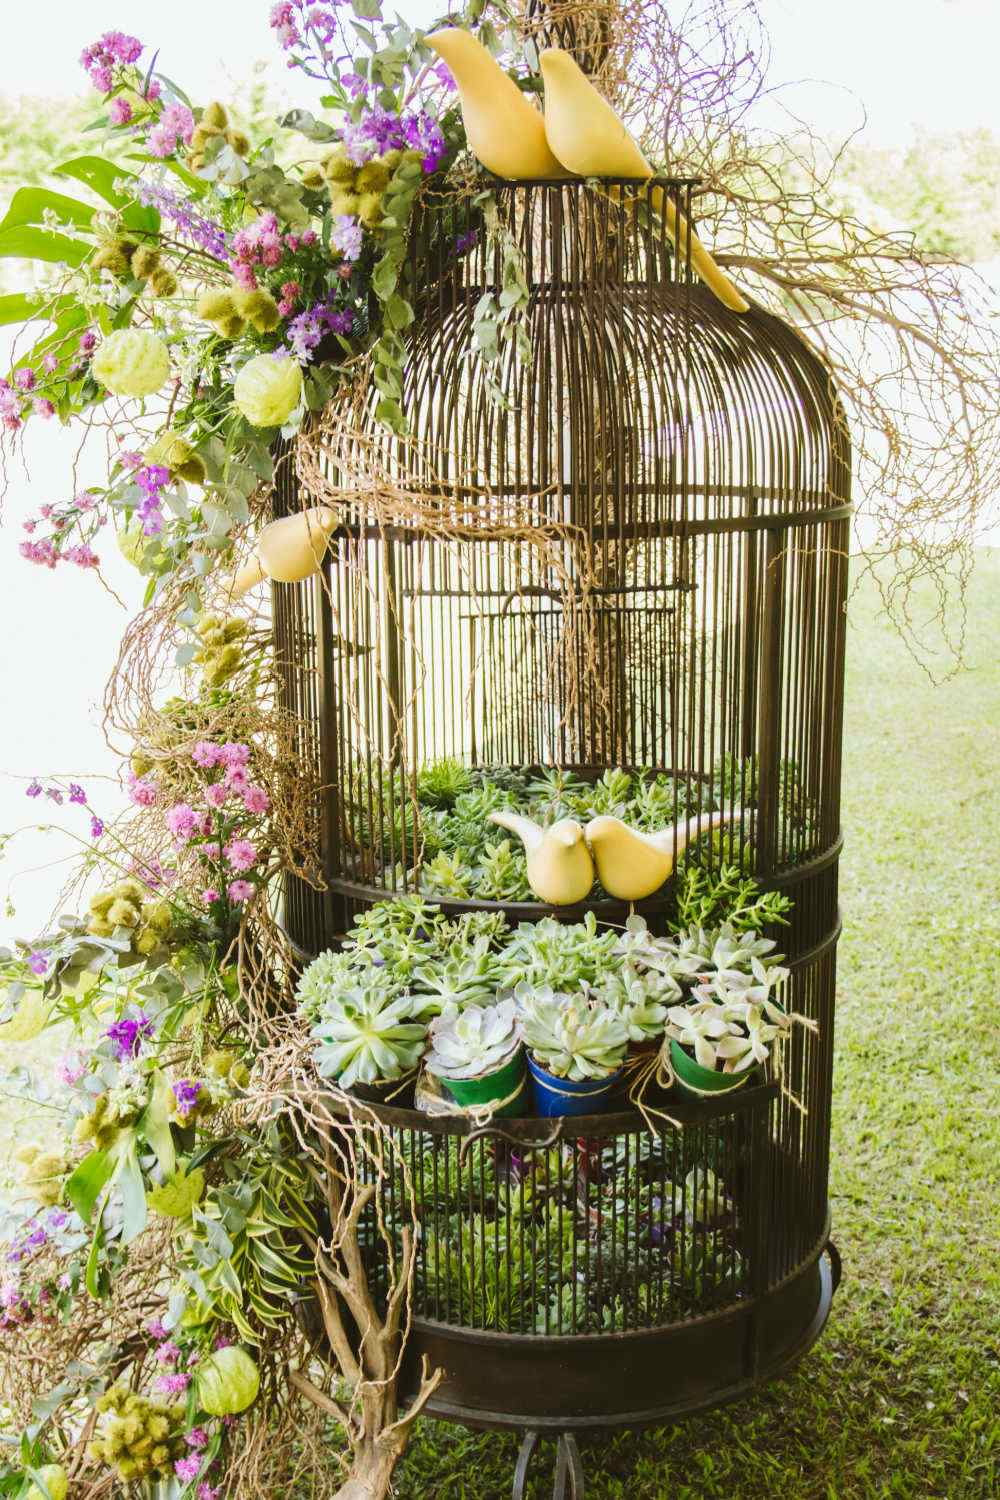 Elaborate arrangement in a bird cage with birds, succulents and silk leaves and flowers.